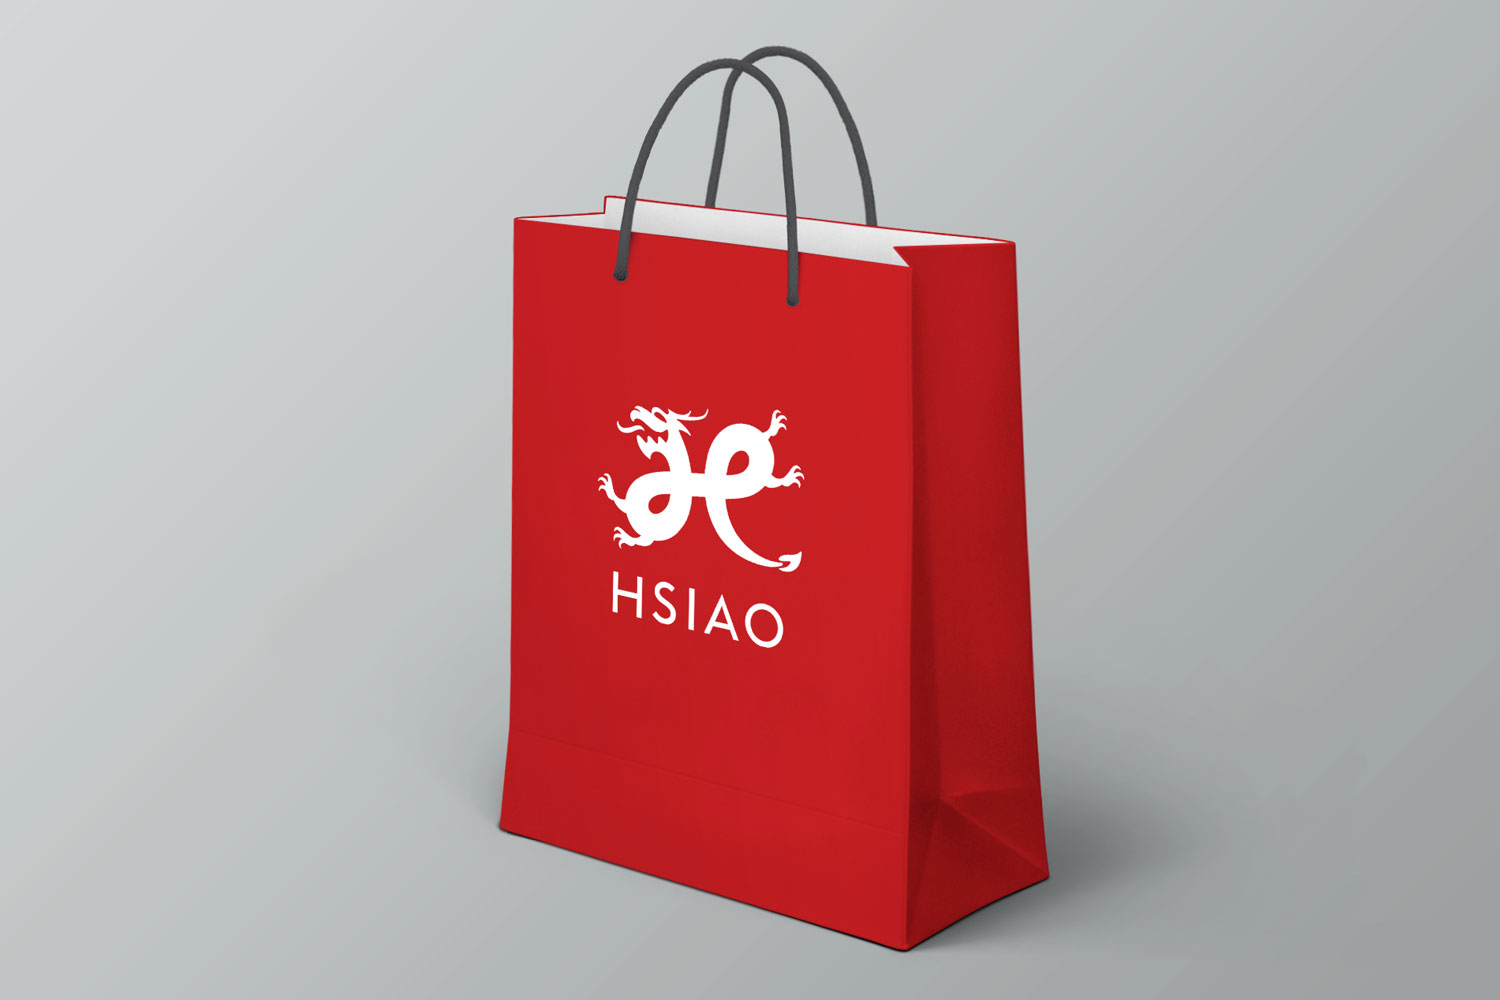 Hsiao Restaurant Group